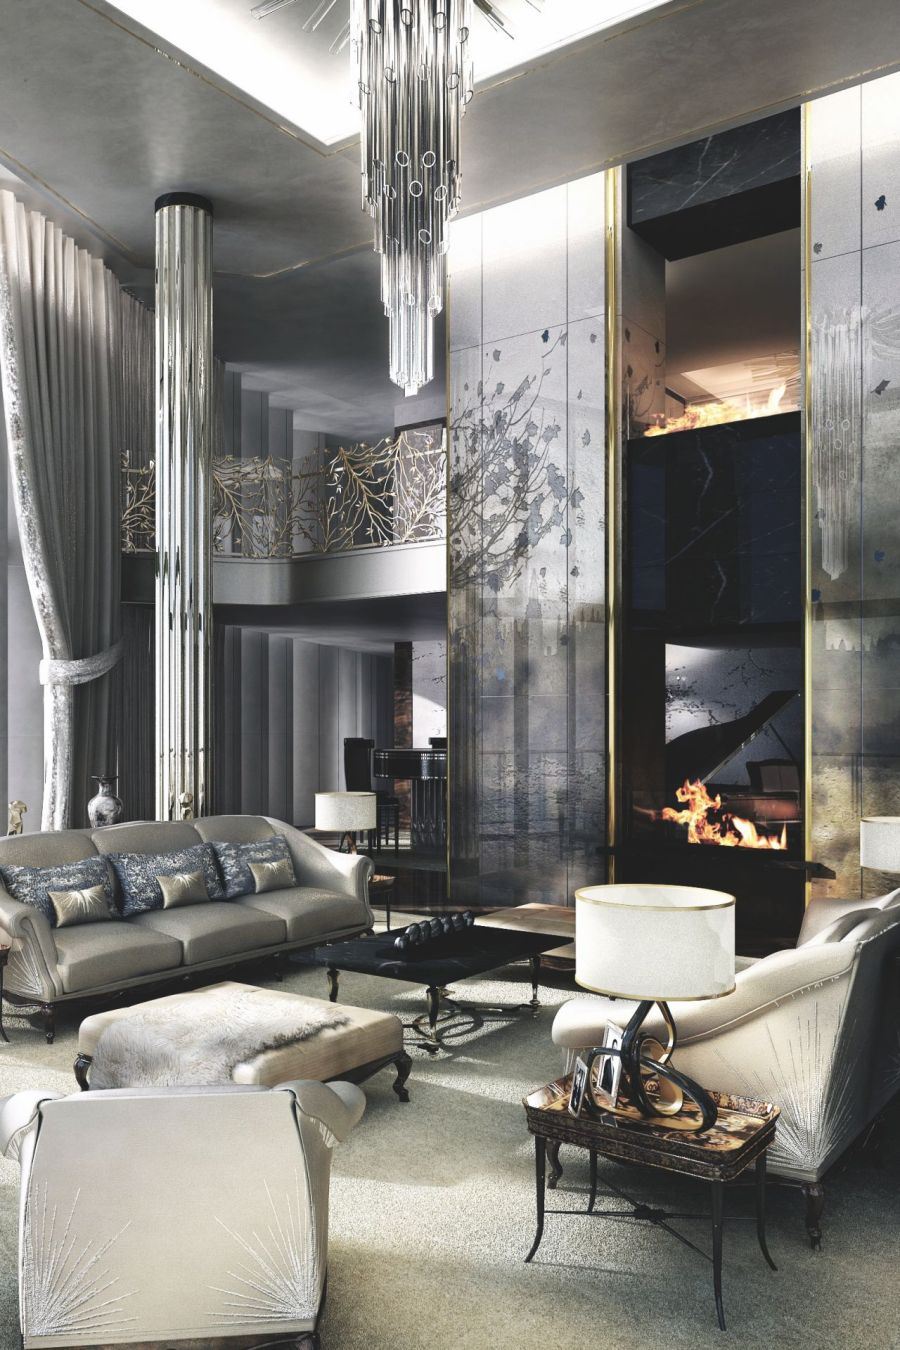 Glam Interior Design interior design ideas for a glamorous living room